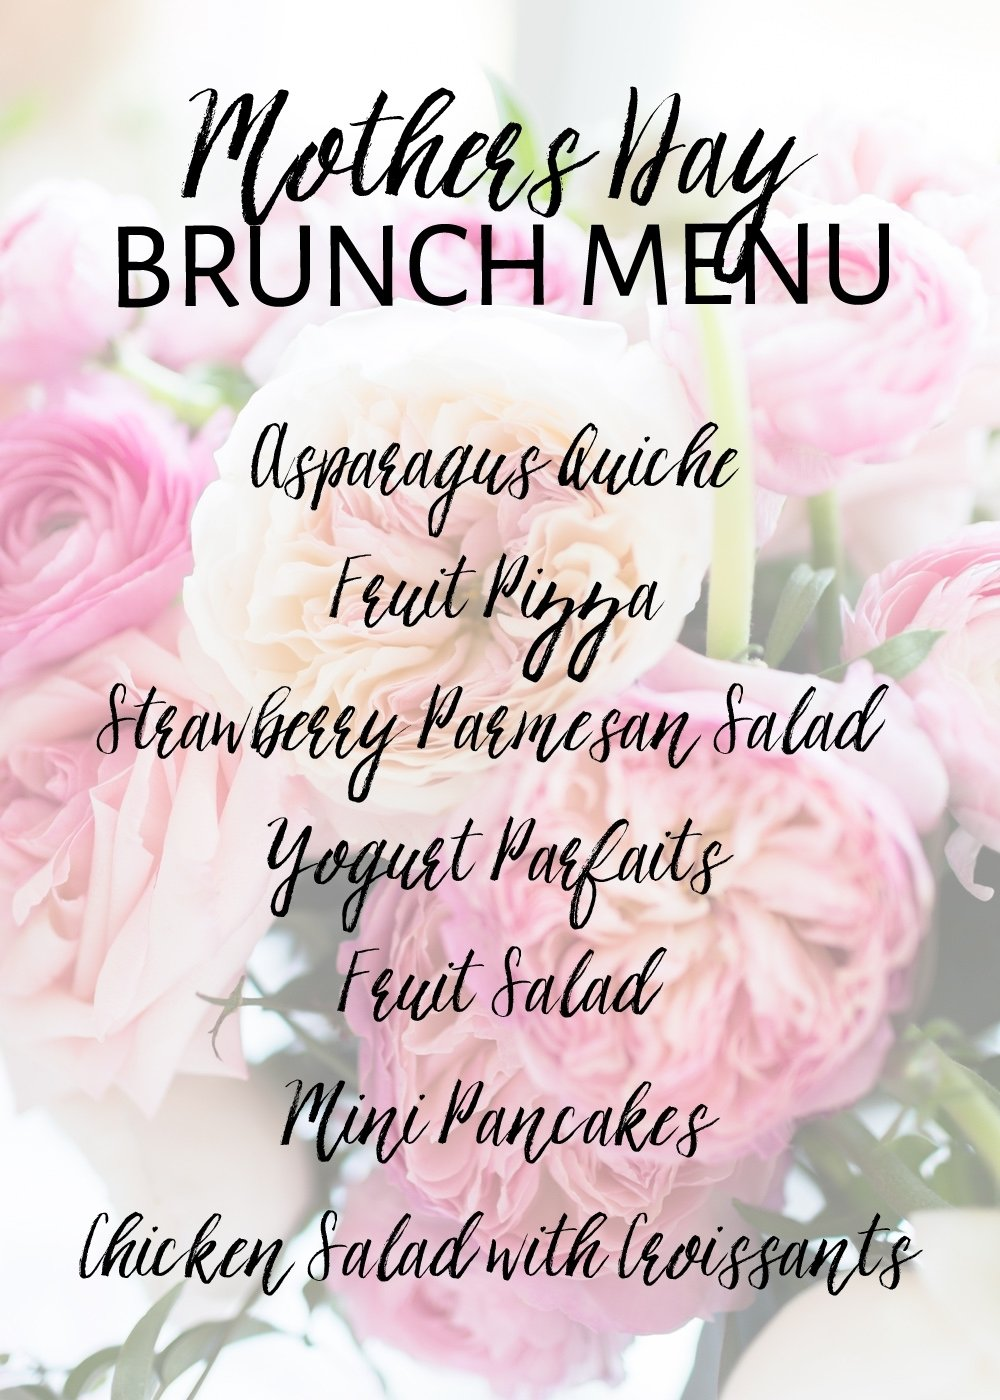 10 Unique Mothers Day Brunch Menu Ideas mothers day brunch menu ideas one stylish party 2021